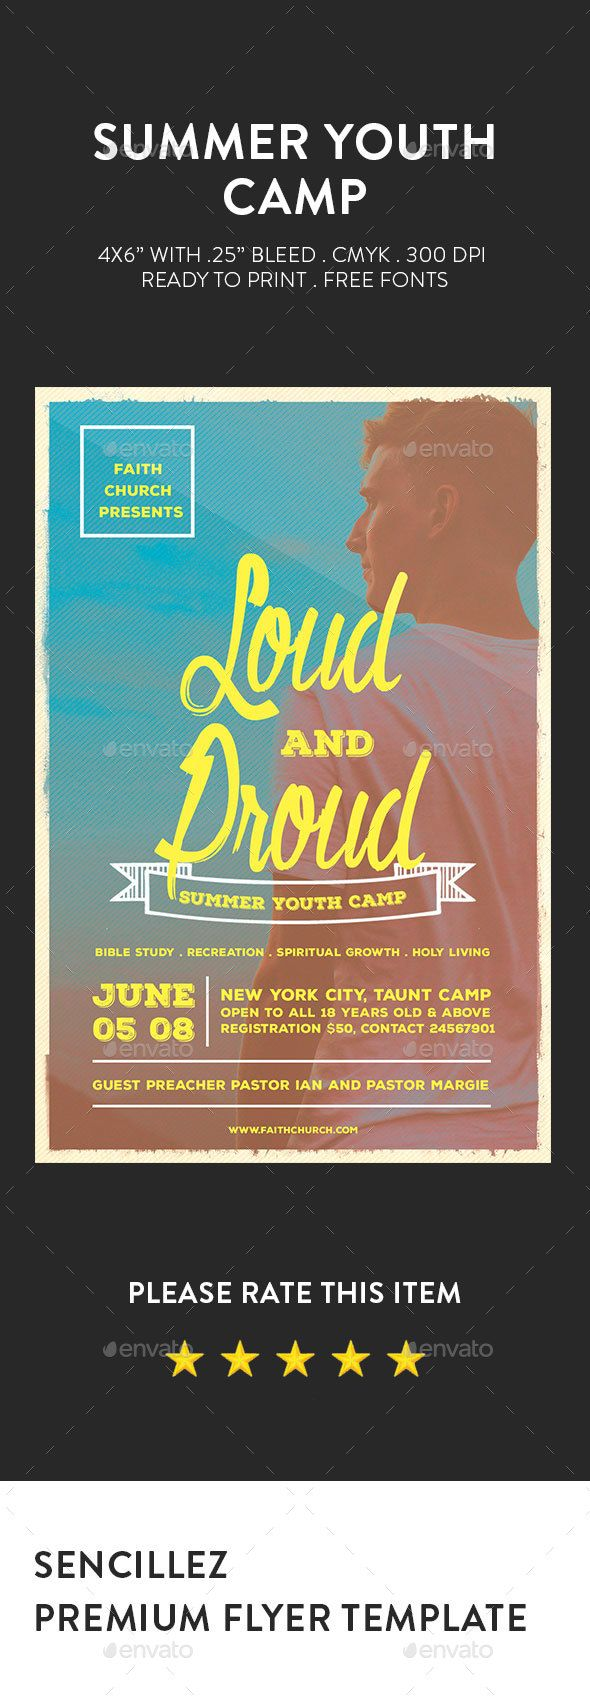 youth flyer template